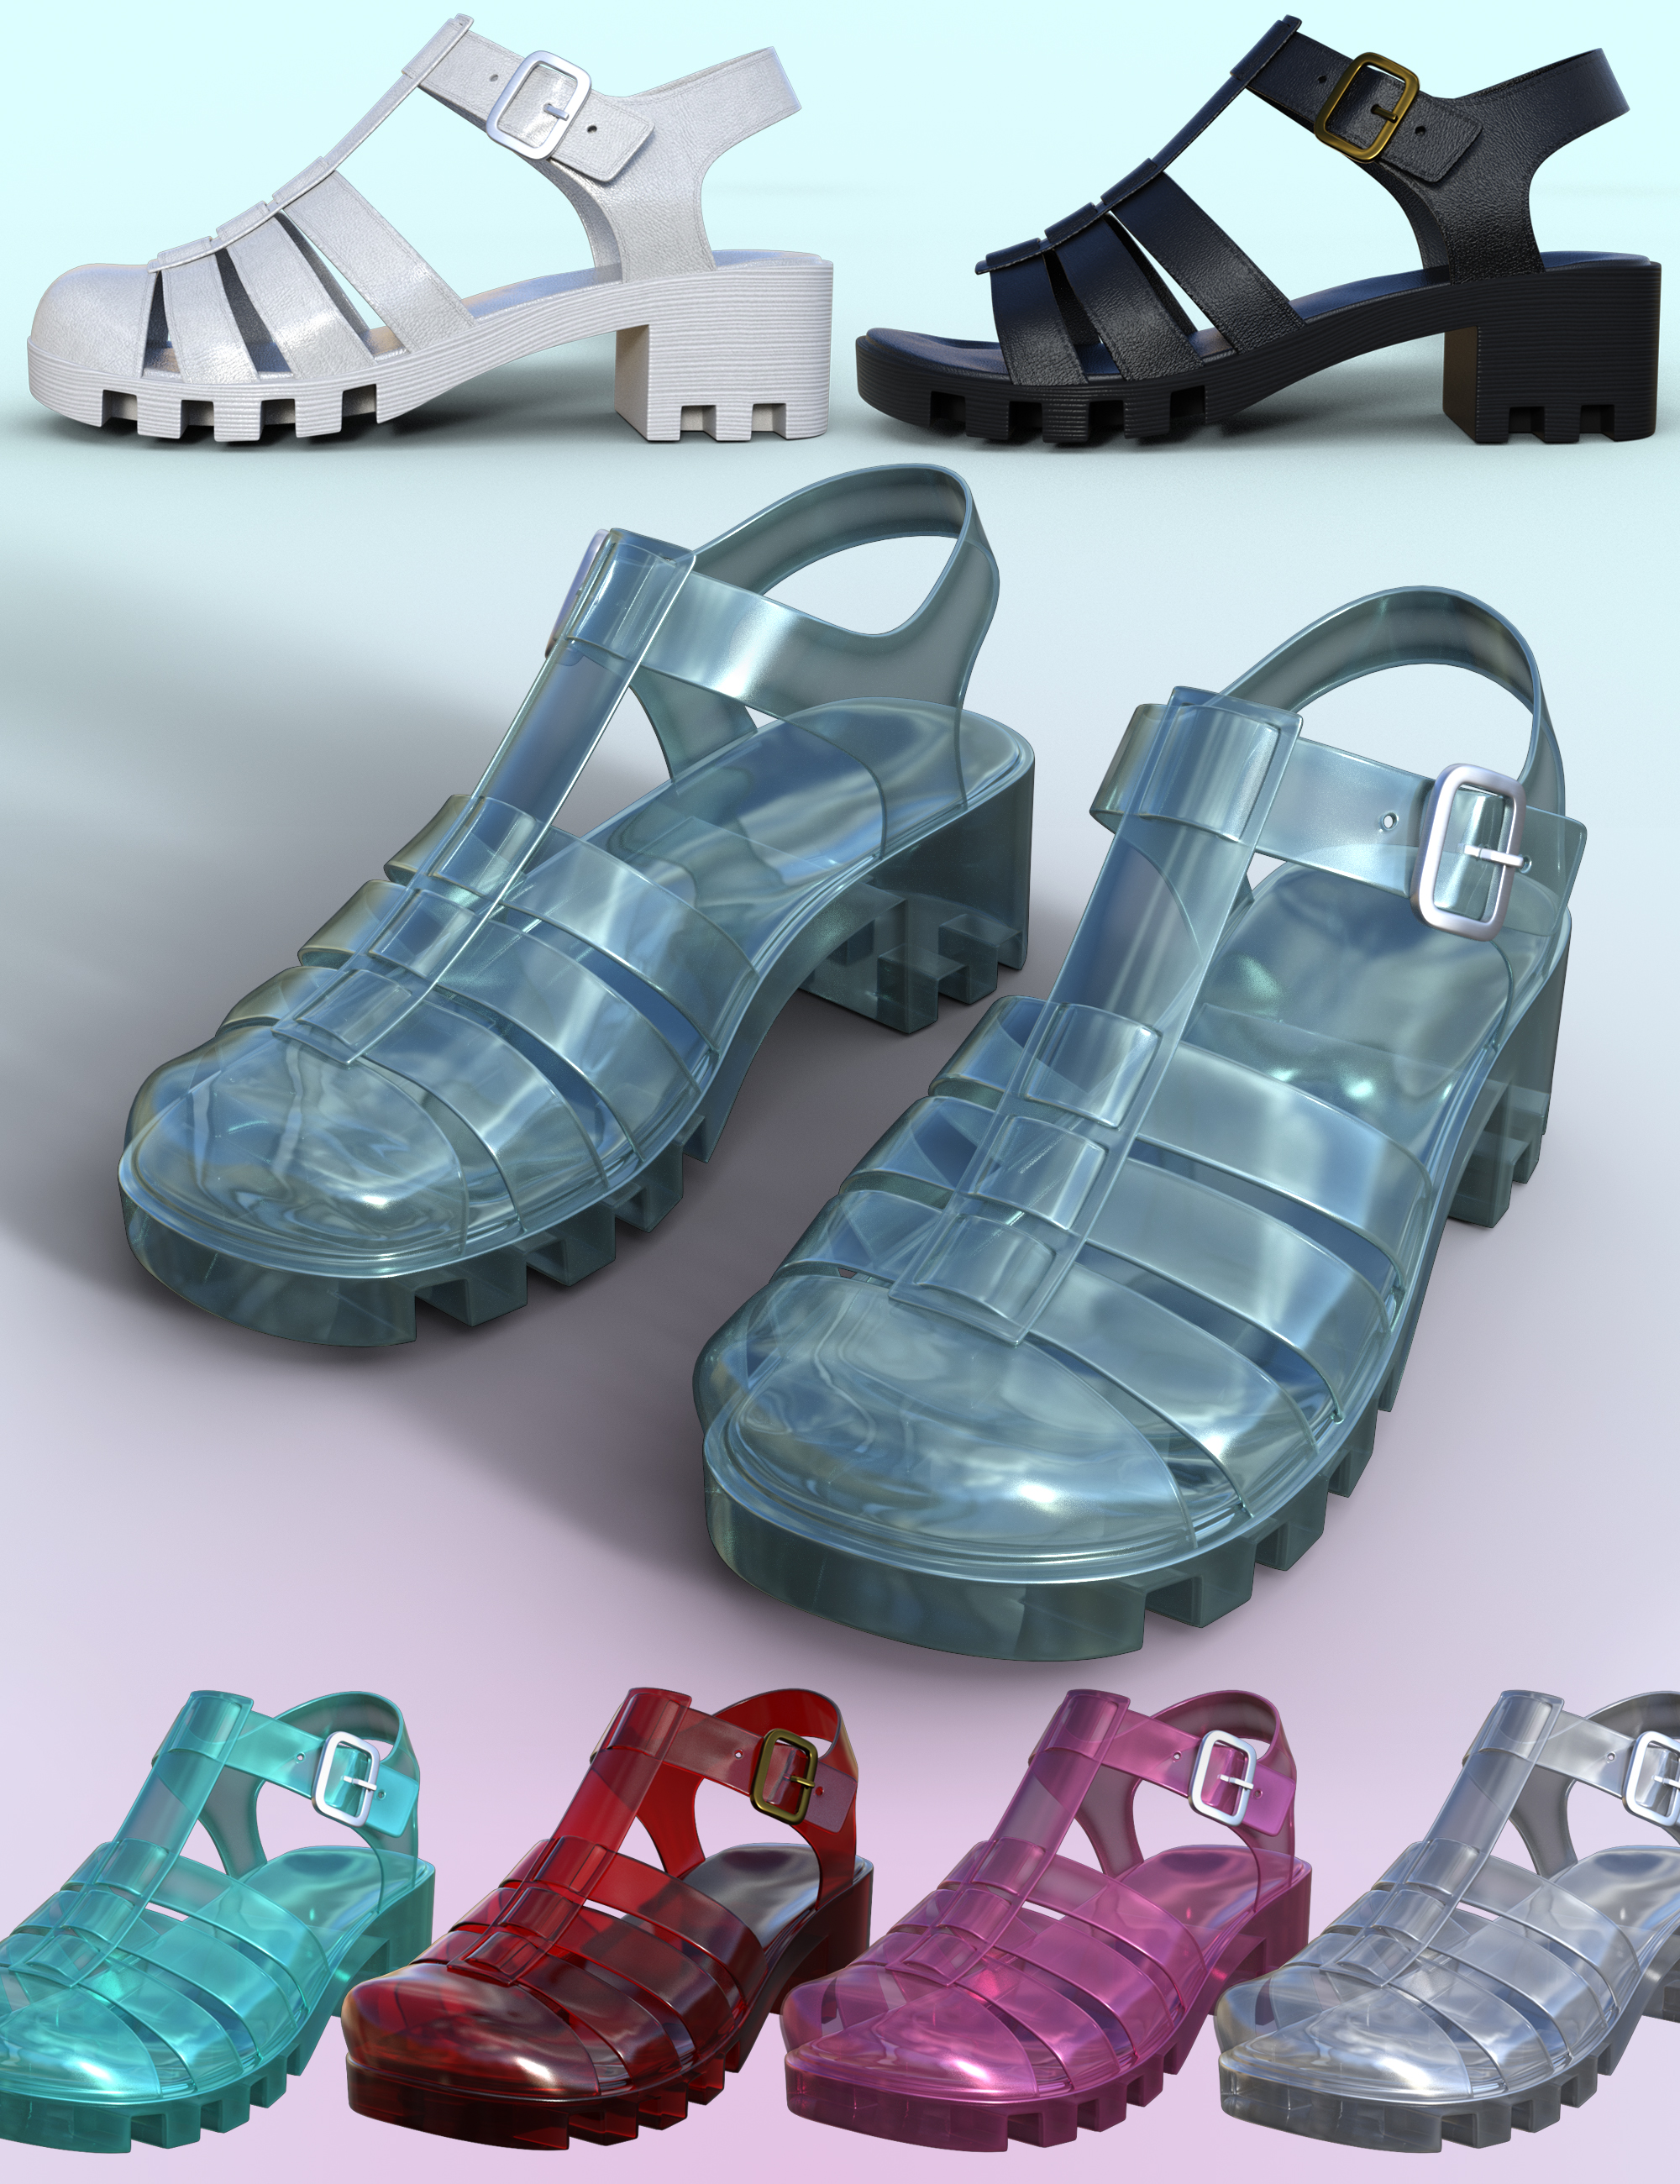 90's Jelly Sandals for Genesis 8 Females by: Dogz, 3D Models by Daz 3D